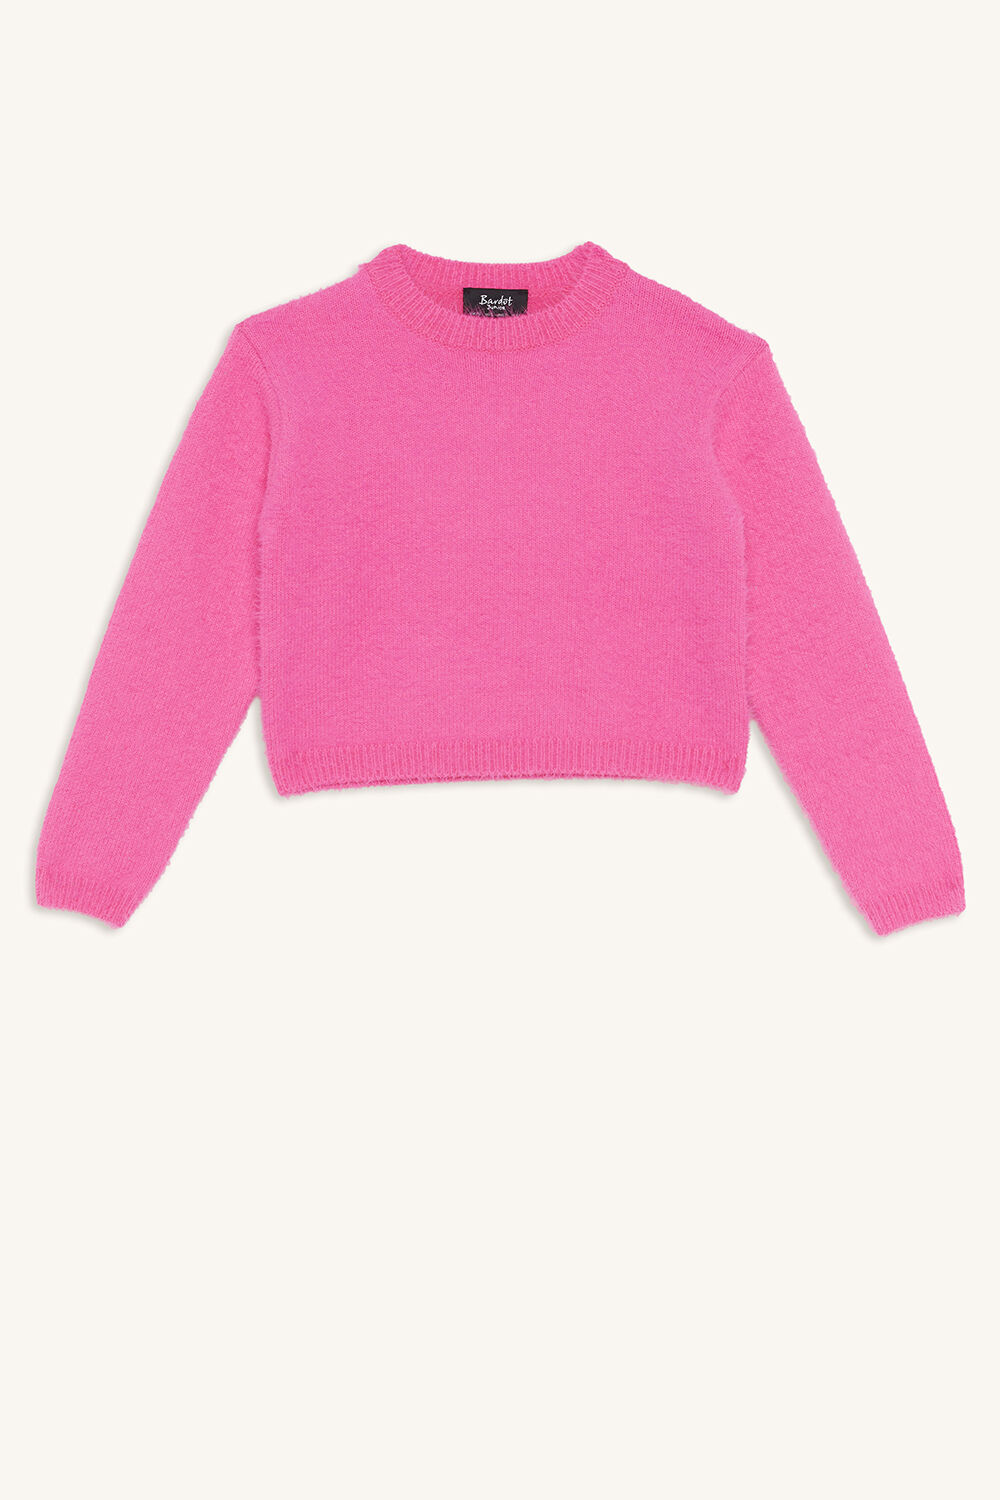 CROPPED FLUFFY KNIT in colour BEETROOT PURPLE